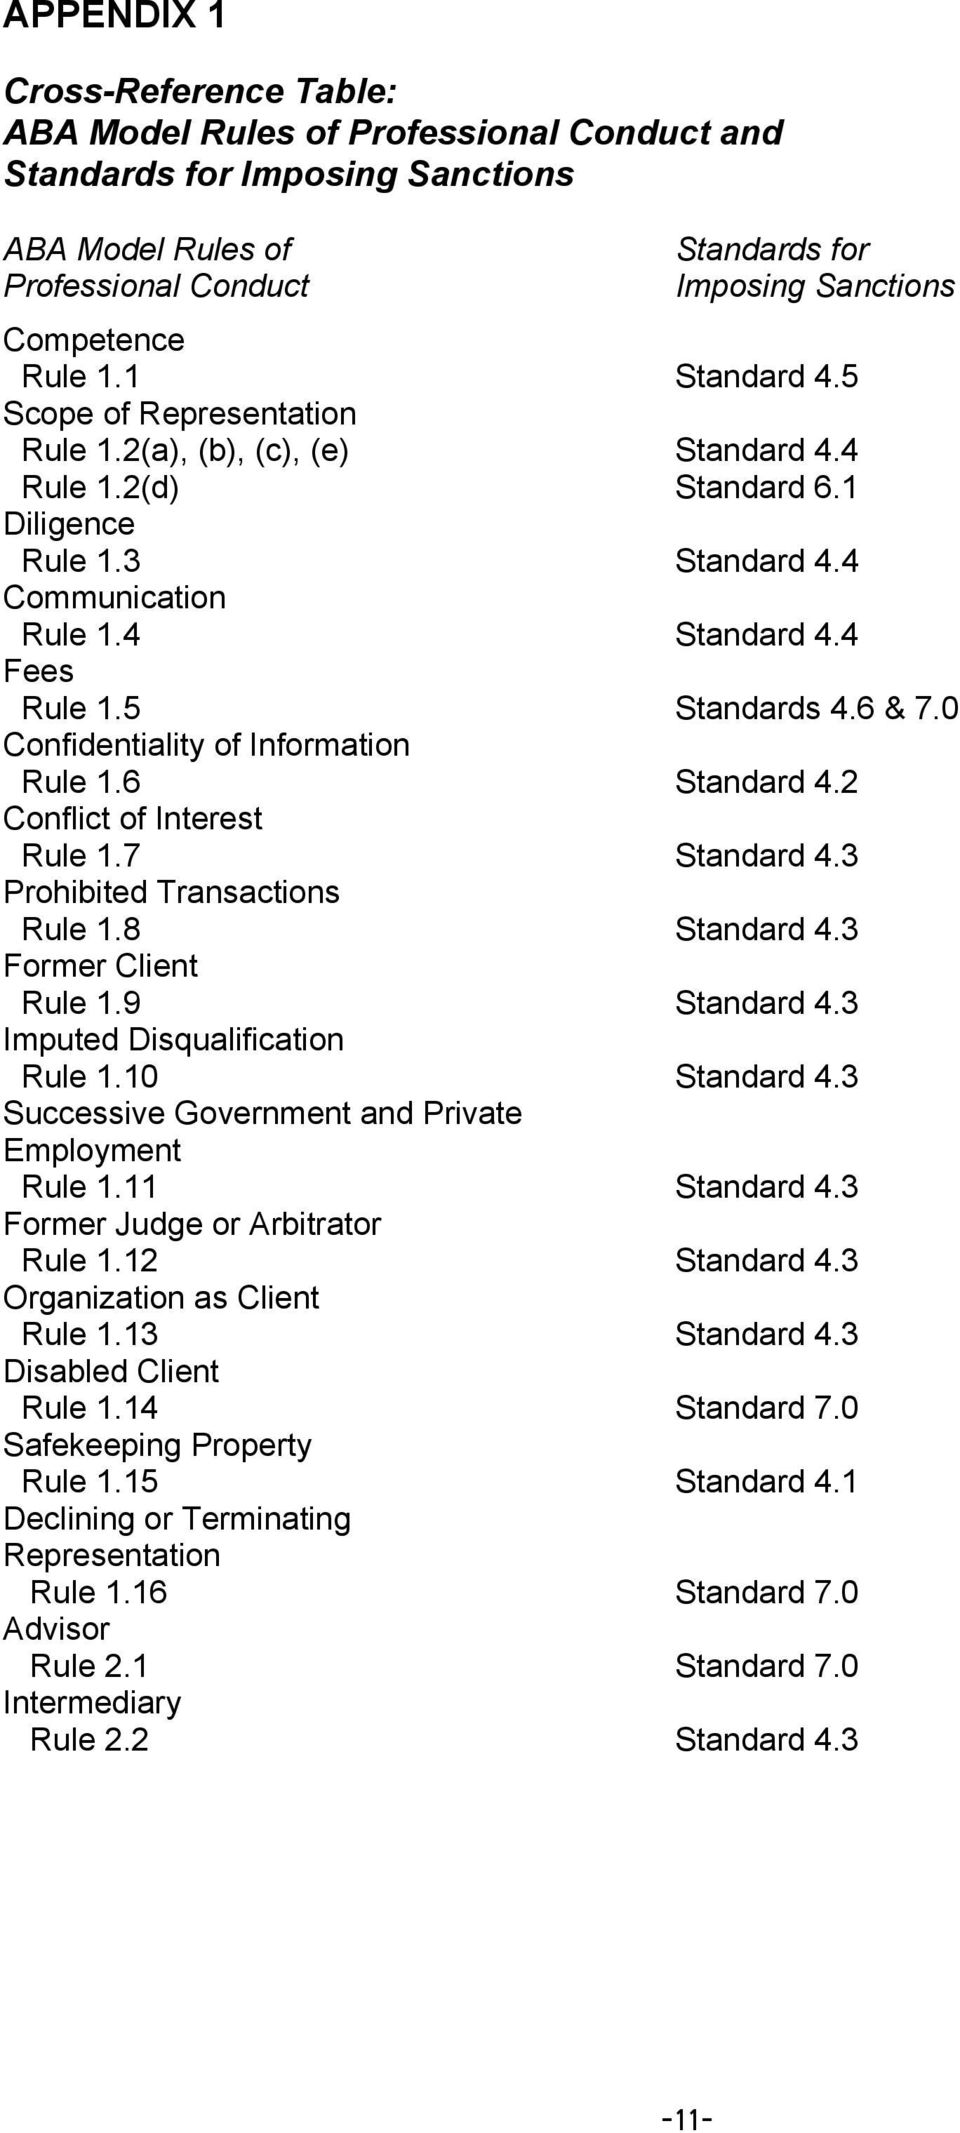 6 & 7.0 Confidentiality of Information Rule 1.6 Standard 4.2 Conflict of Interest Rule 1.7 Standard 4.3 Prohibited Transactions Rule 1.8 Standard 4.3 Former Client Rule 1.9 Standard 4.